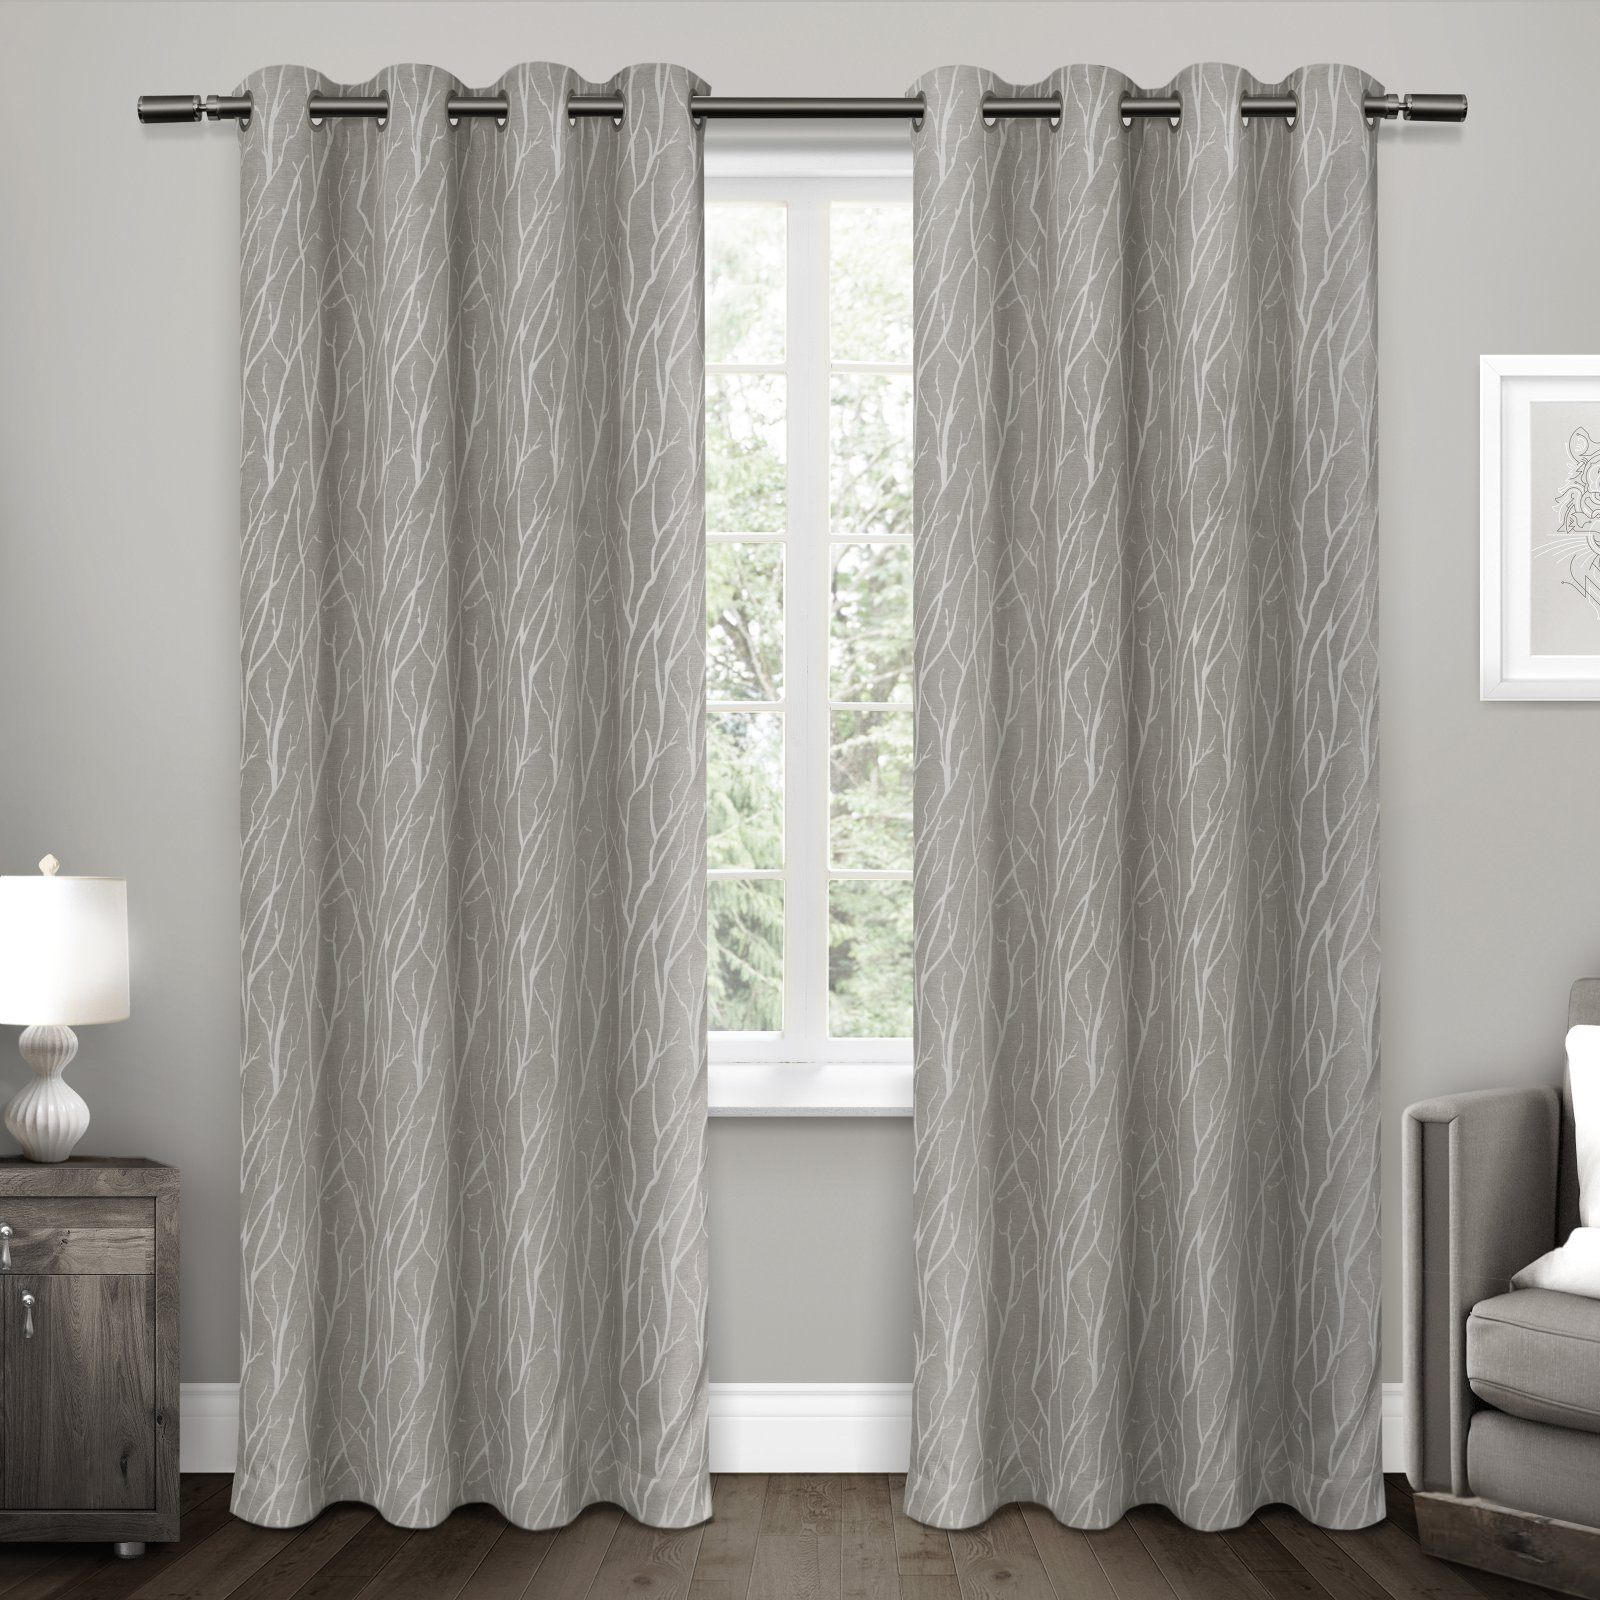 Exclusive Home Curtains 2 Pack Forest Hill Woven Grommet Top Curtain Panels